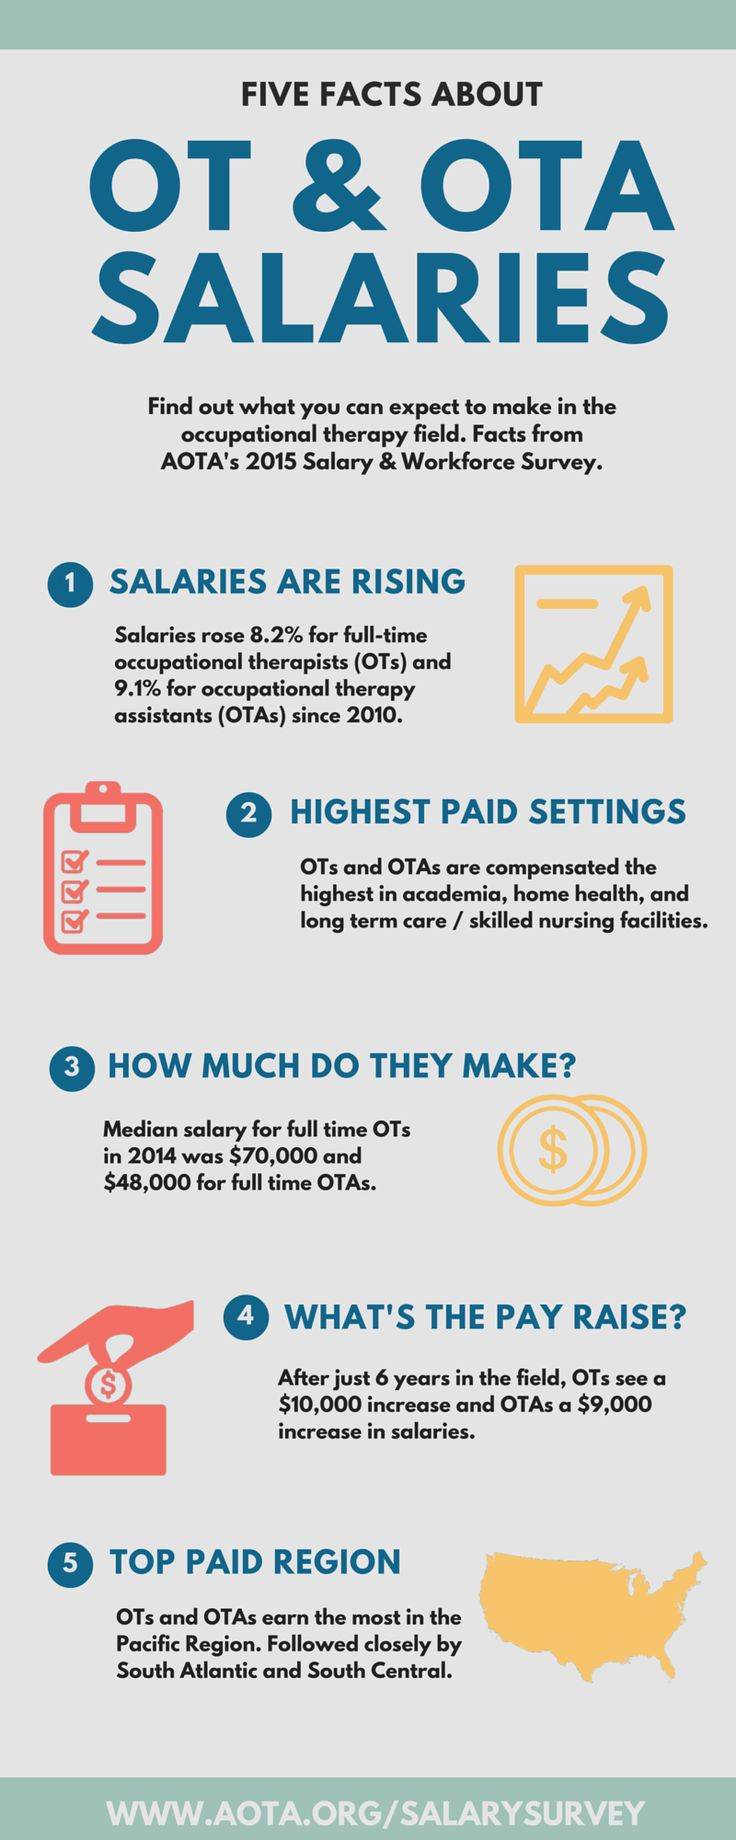 Health south physical therapy - Find Out What You Can Expect To Make In The Occupational Therapy Field Five Facts